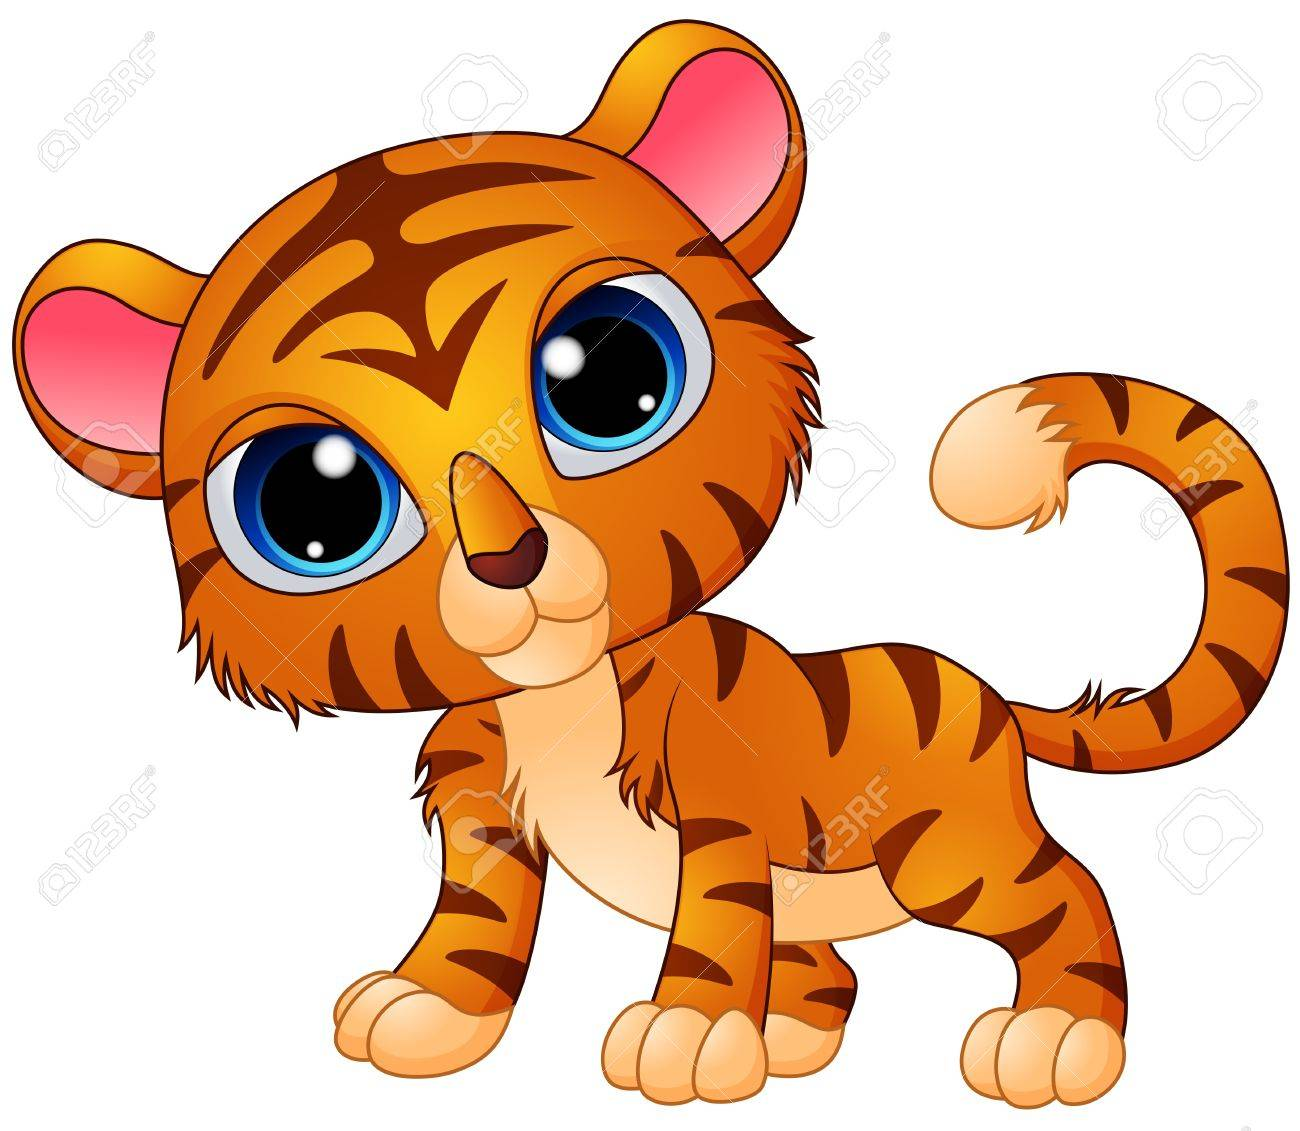 Cute Baby Tiger Cartoon Stock Vector